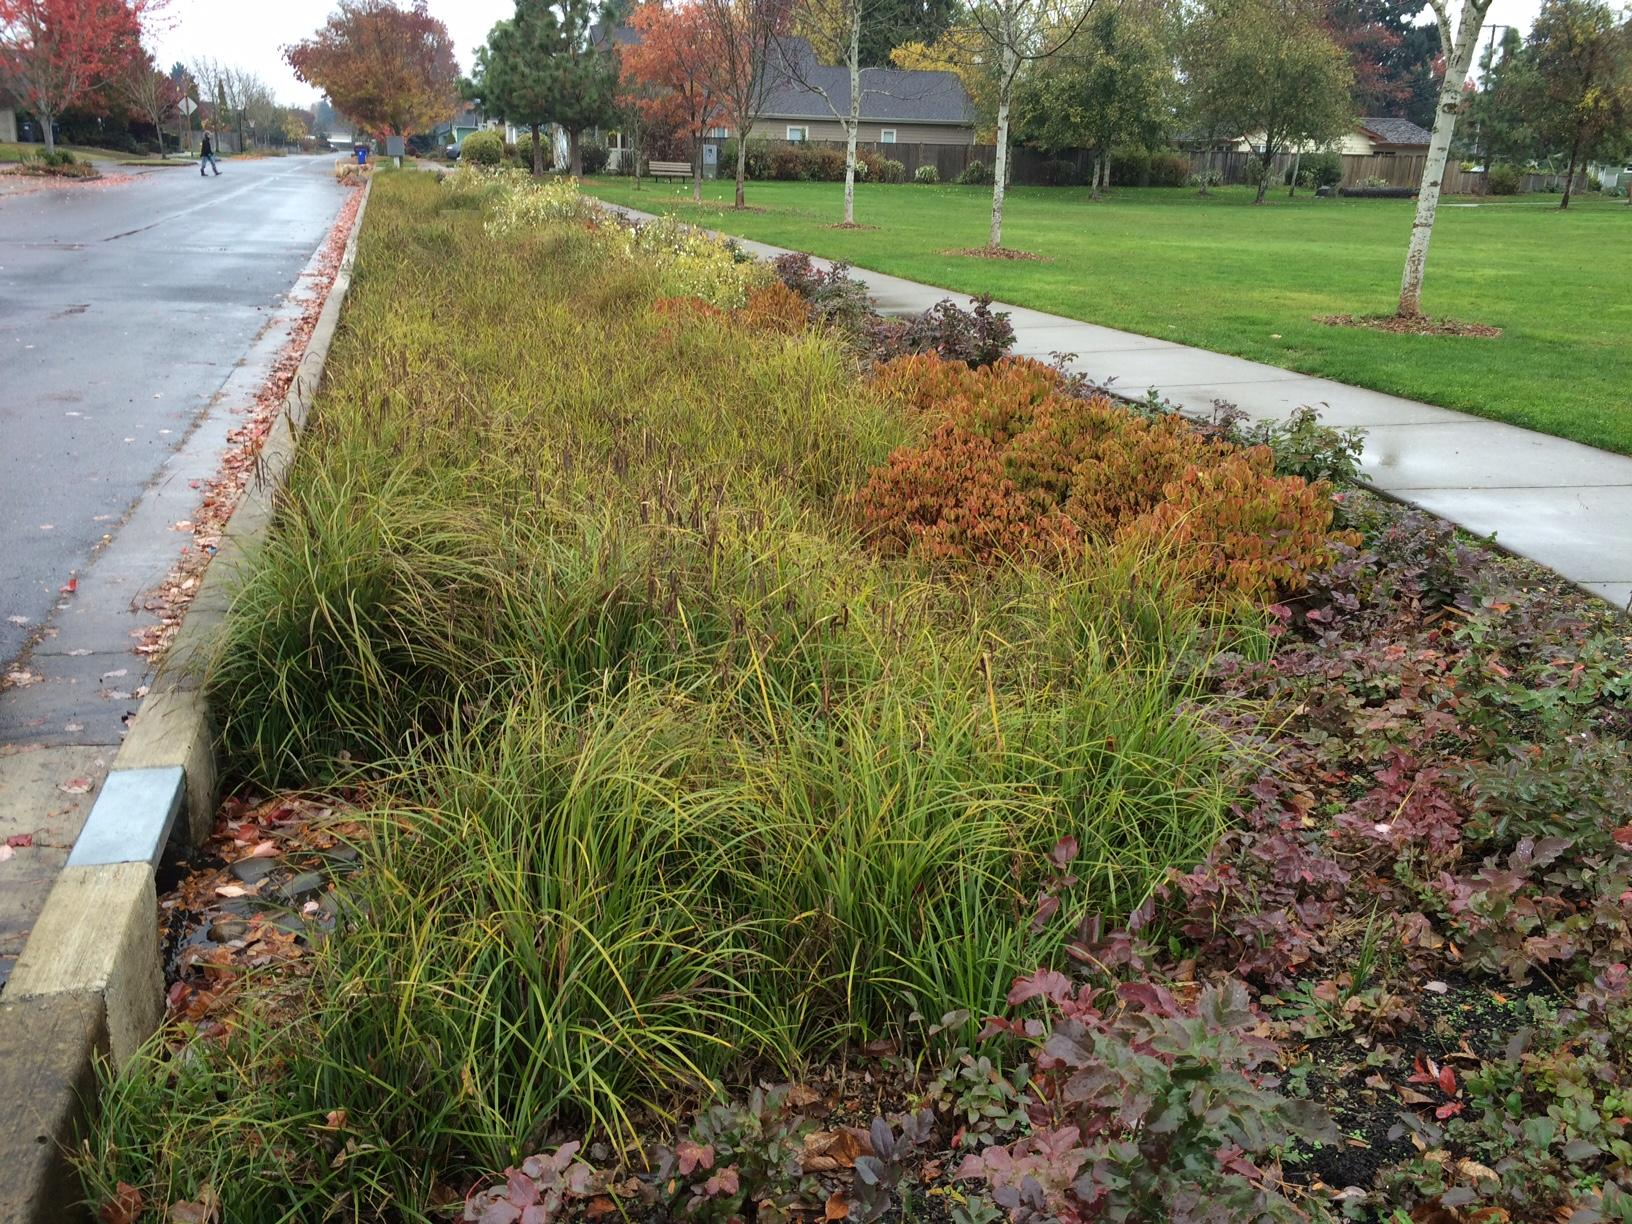 Rain Gardens: Filtering the toxins and pesticides out of our storm drains